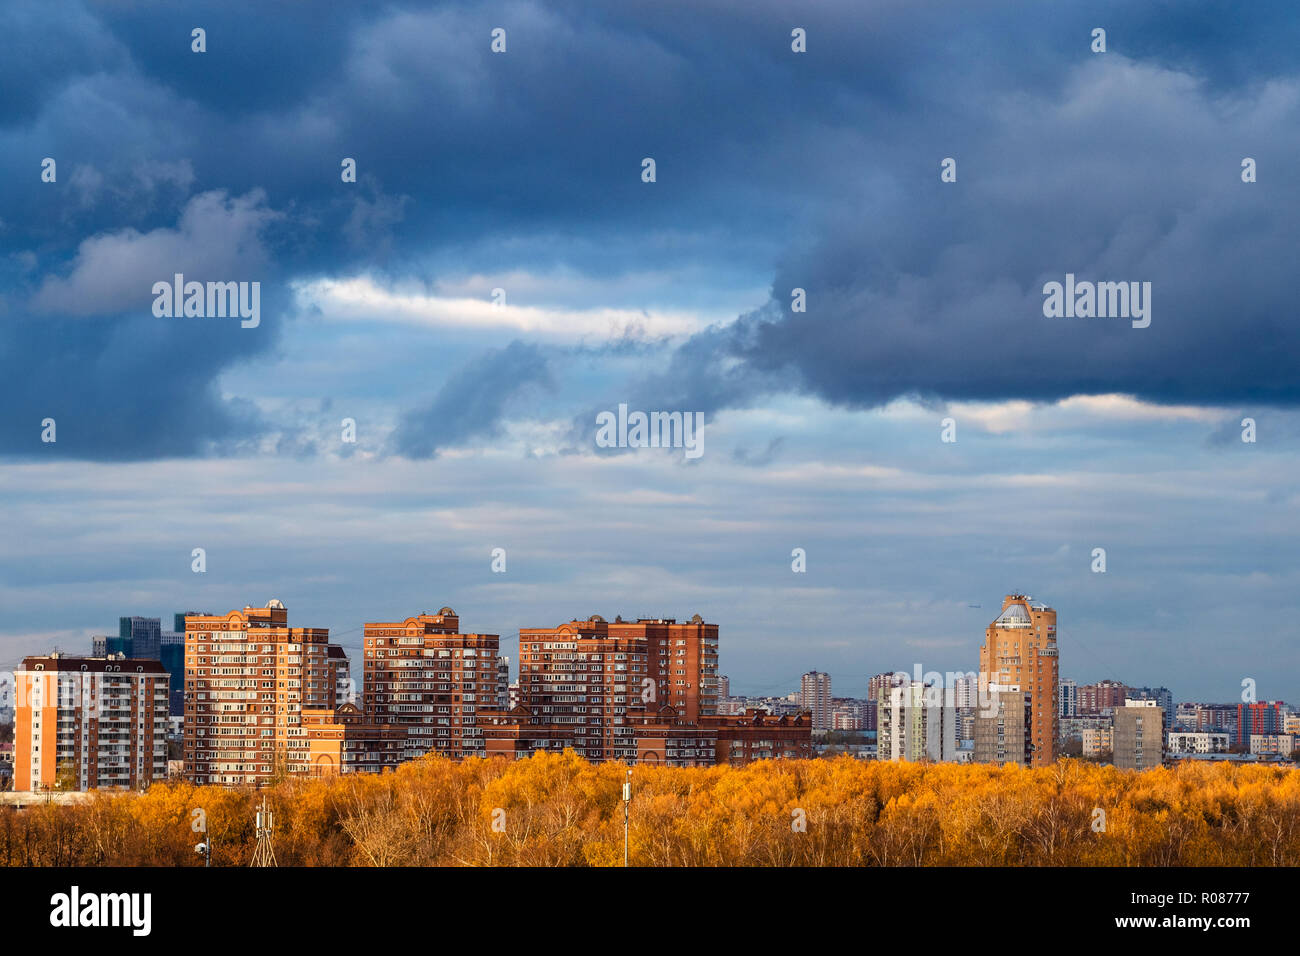 dark blue snow storm clouds over apartment houses in city in autumn - Stock  Image